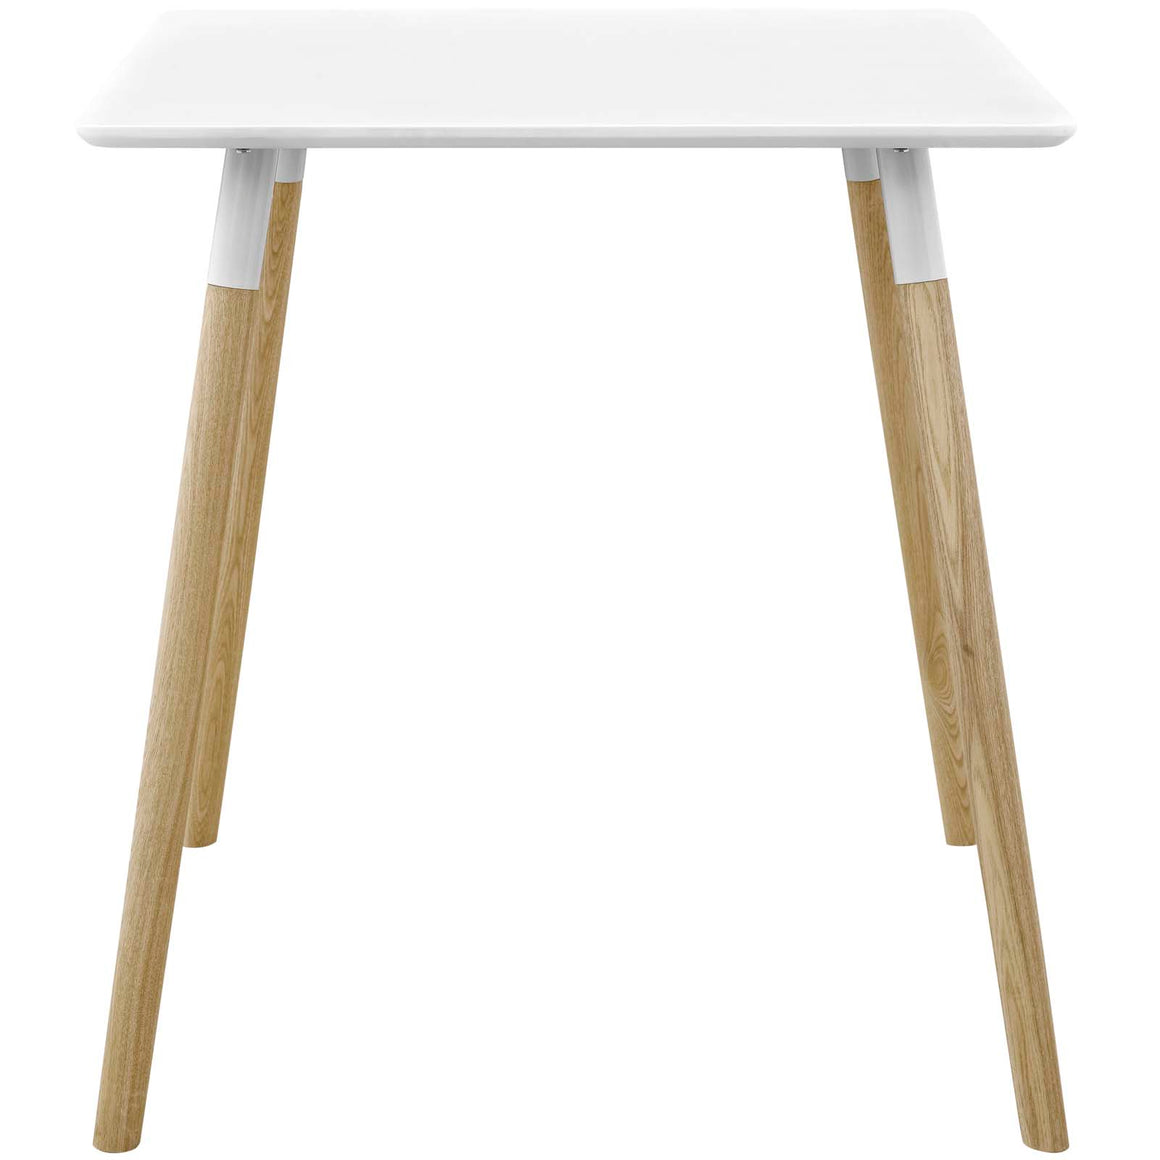 "CONTINUUM 28"" SQUARE DINING TABLE IN WHITE"